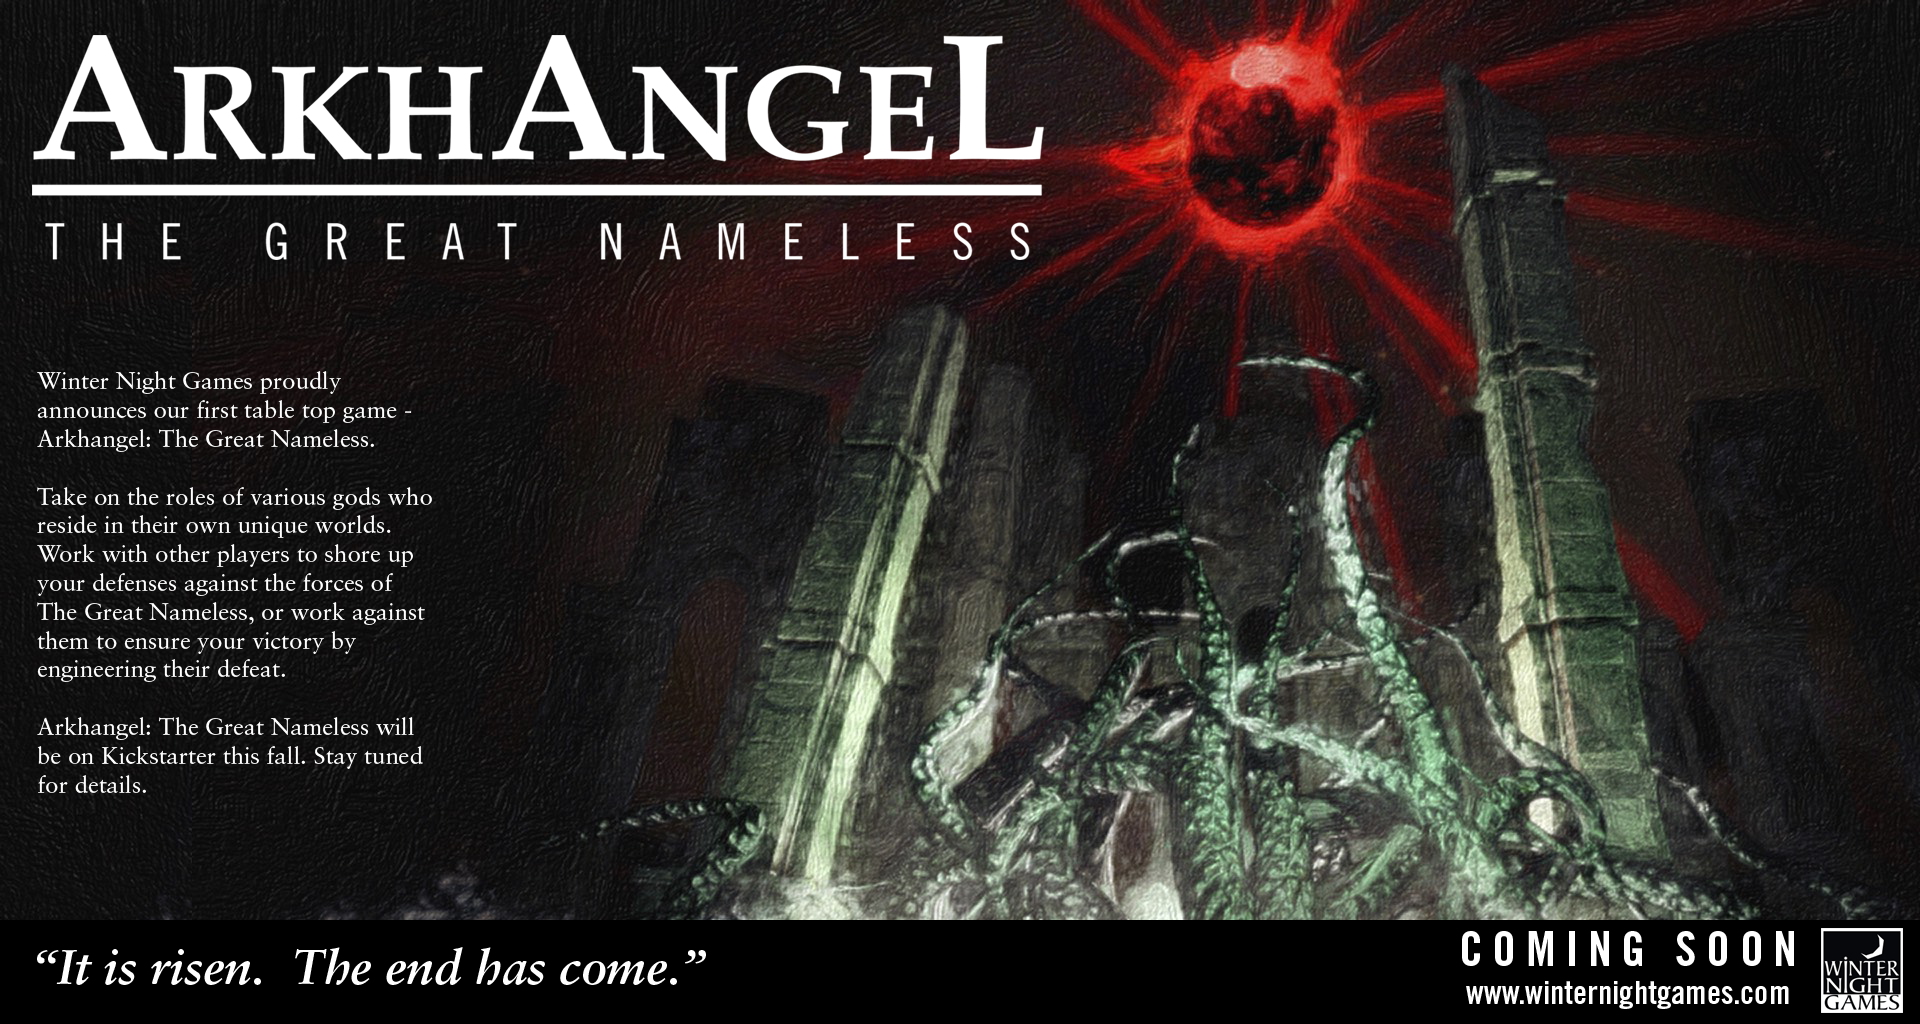 Arkhangel: The Great Nameless